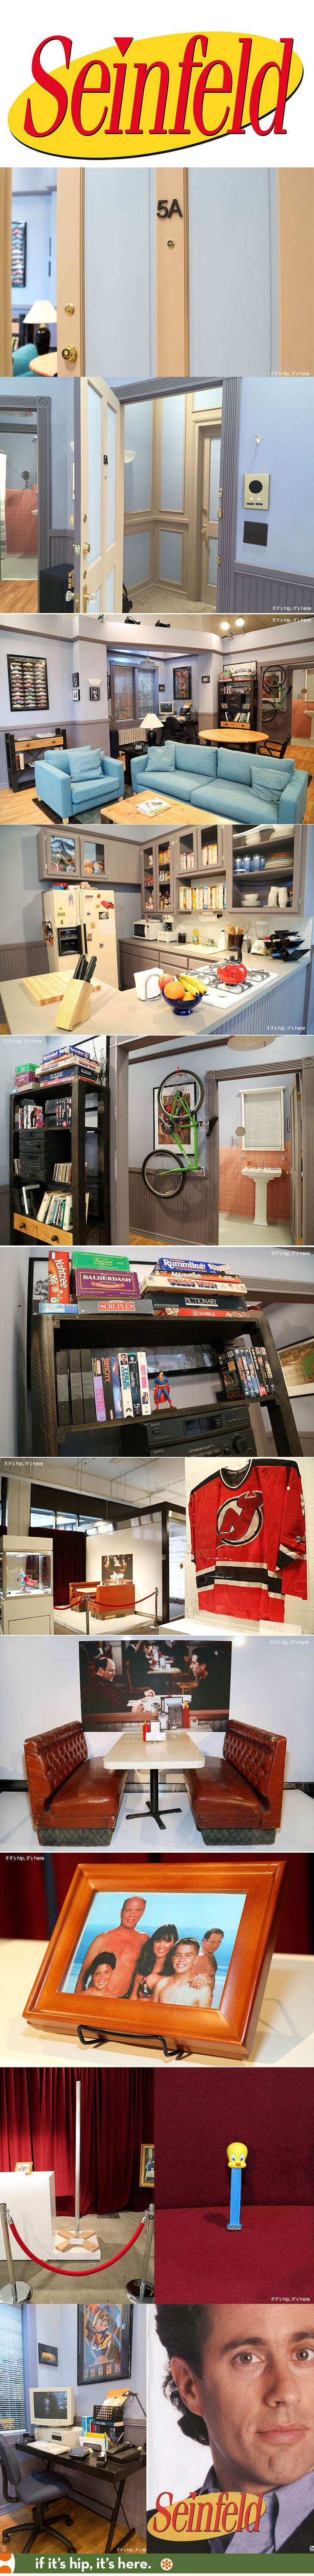 Seinfeld apartment replica and mini museum pop-up in New York to promote Hulu. | http://www.ifitshipitshere.com/seinfeld-apartment-replica-and-mini-museum-promote-hulus-streaming-of-the-comedy/